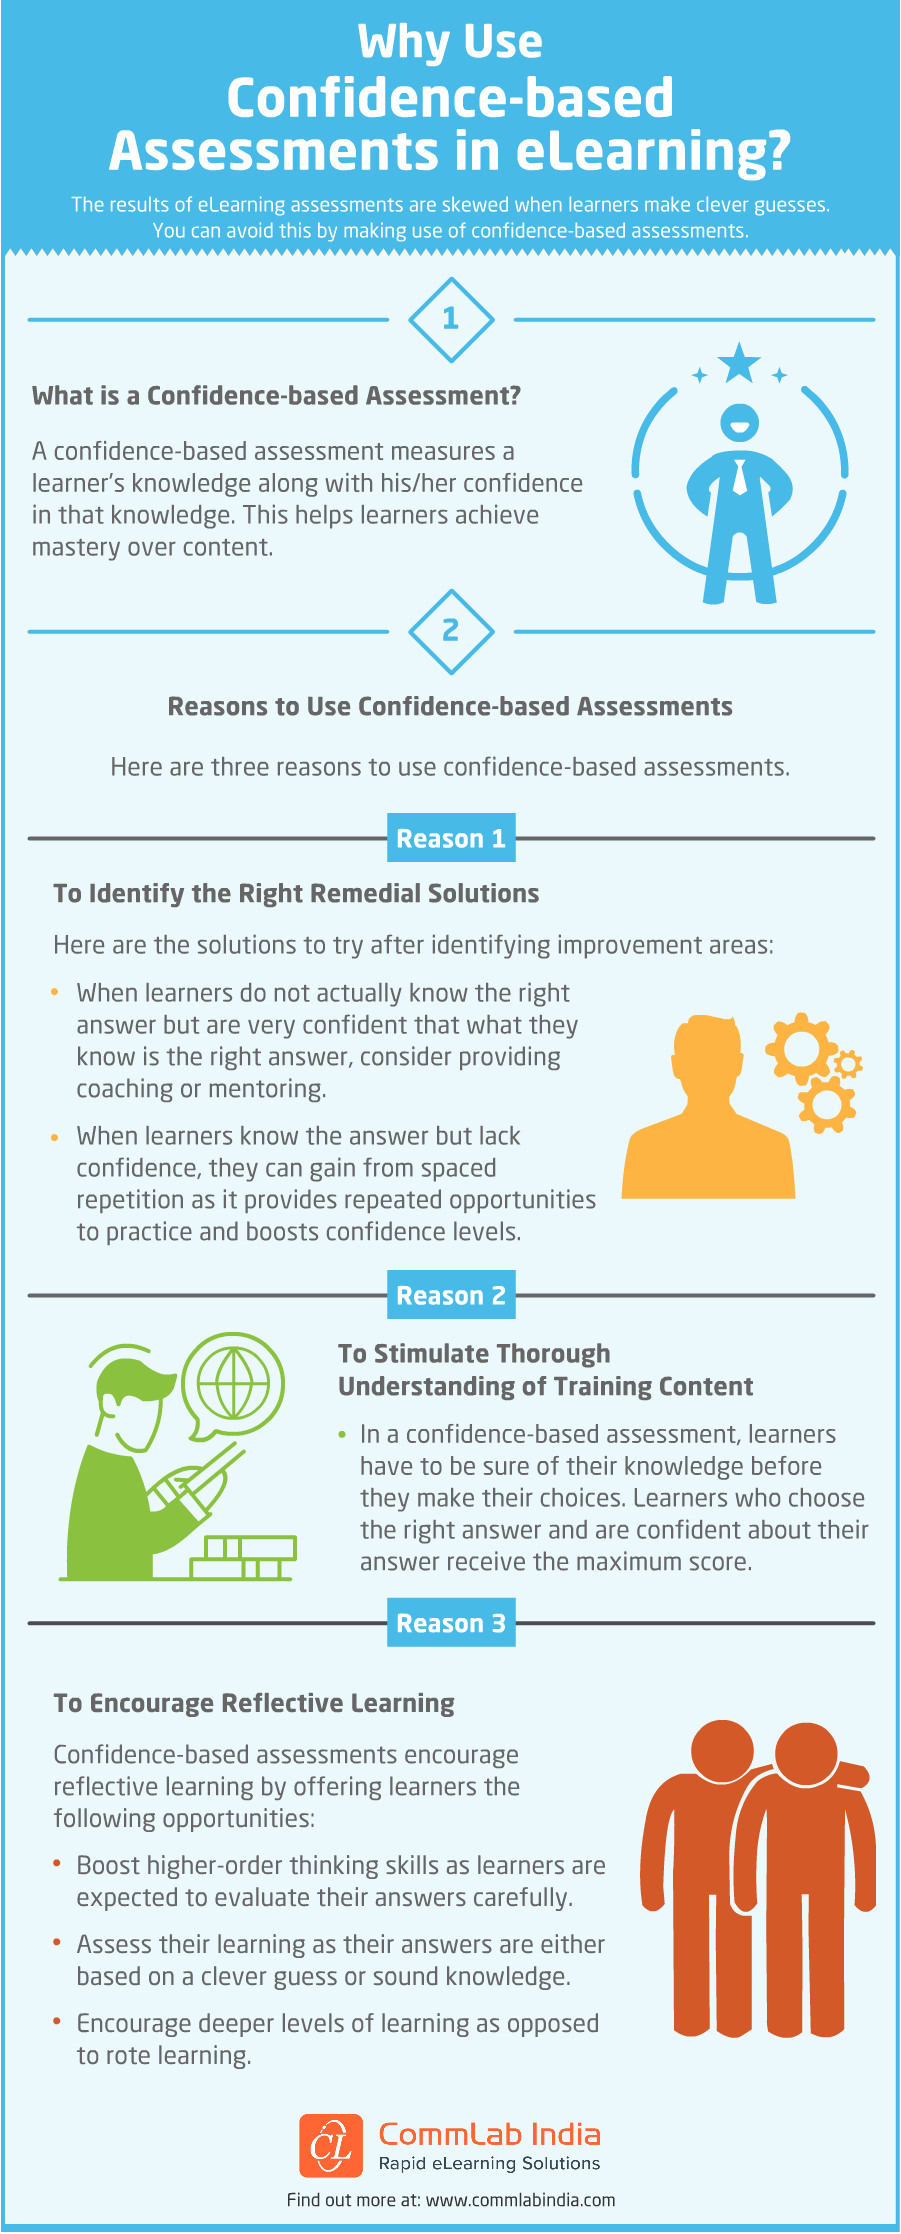 Why Use Confidence-based Assessments in eLearning [Infographic]